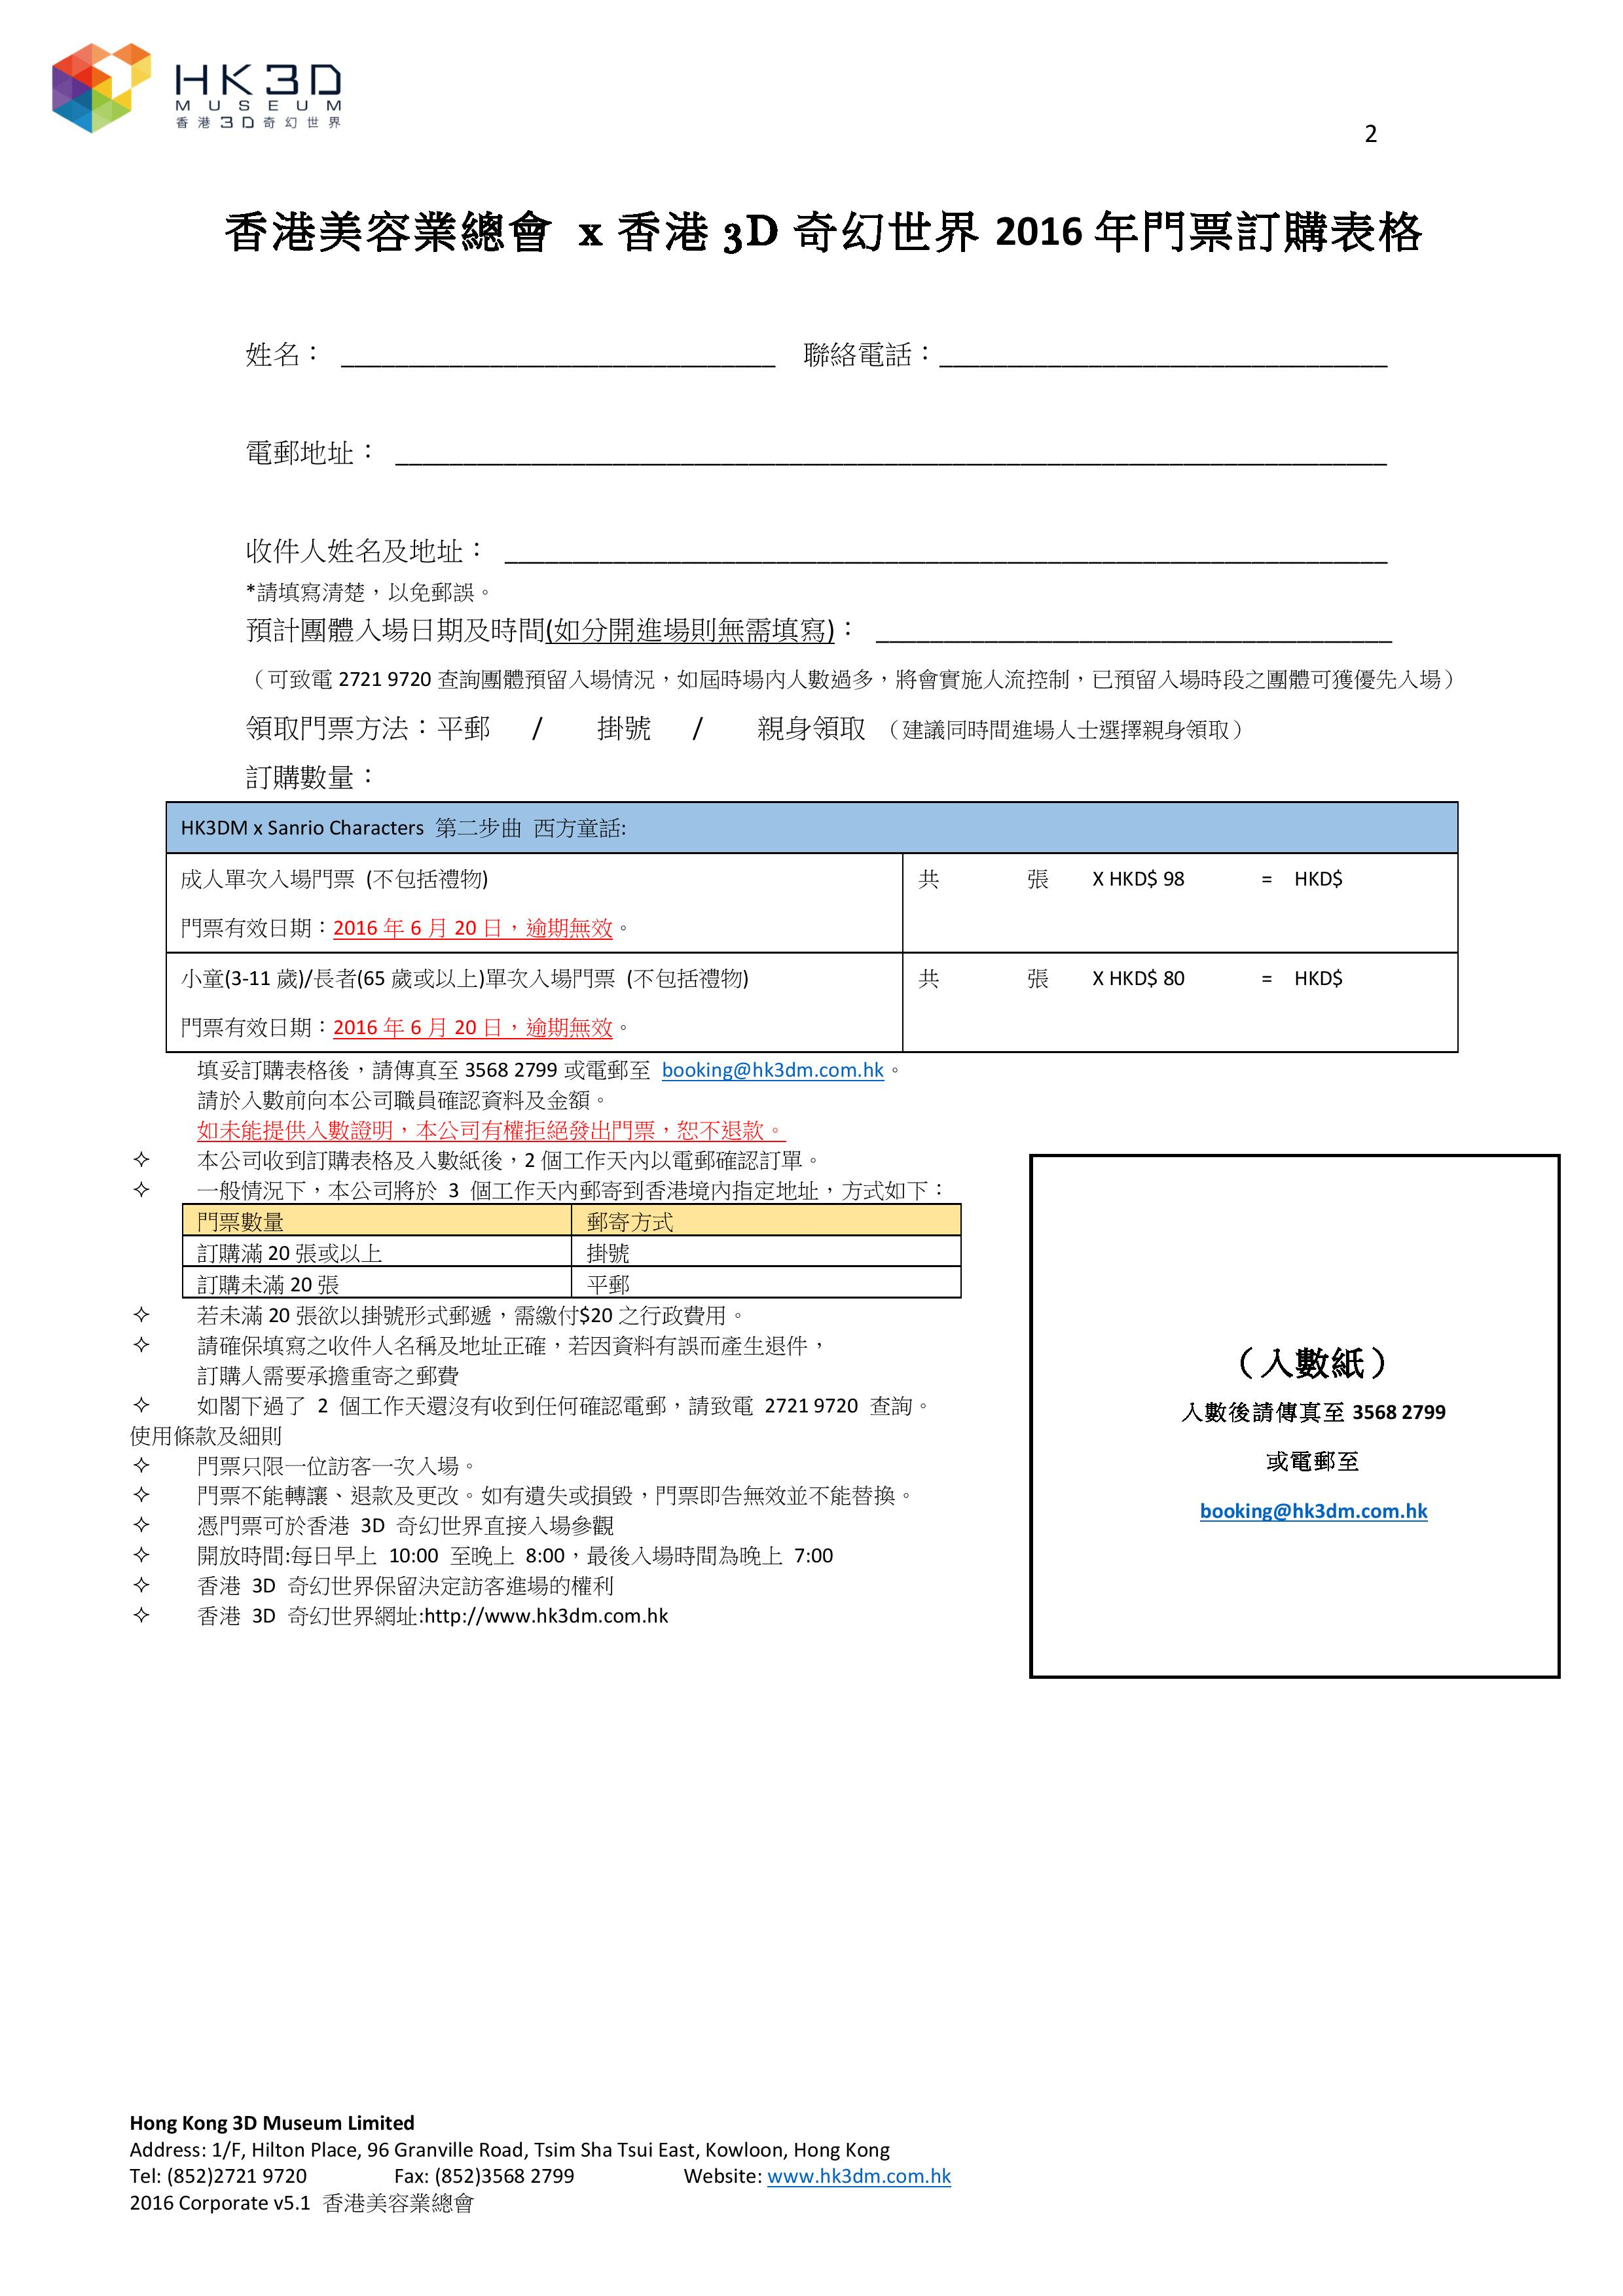 香港美容業總會 x HK3DM 2016 Corporate Order Form - Chi_v5-1 P2